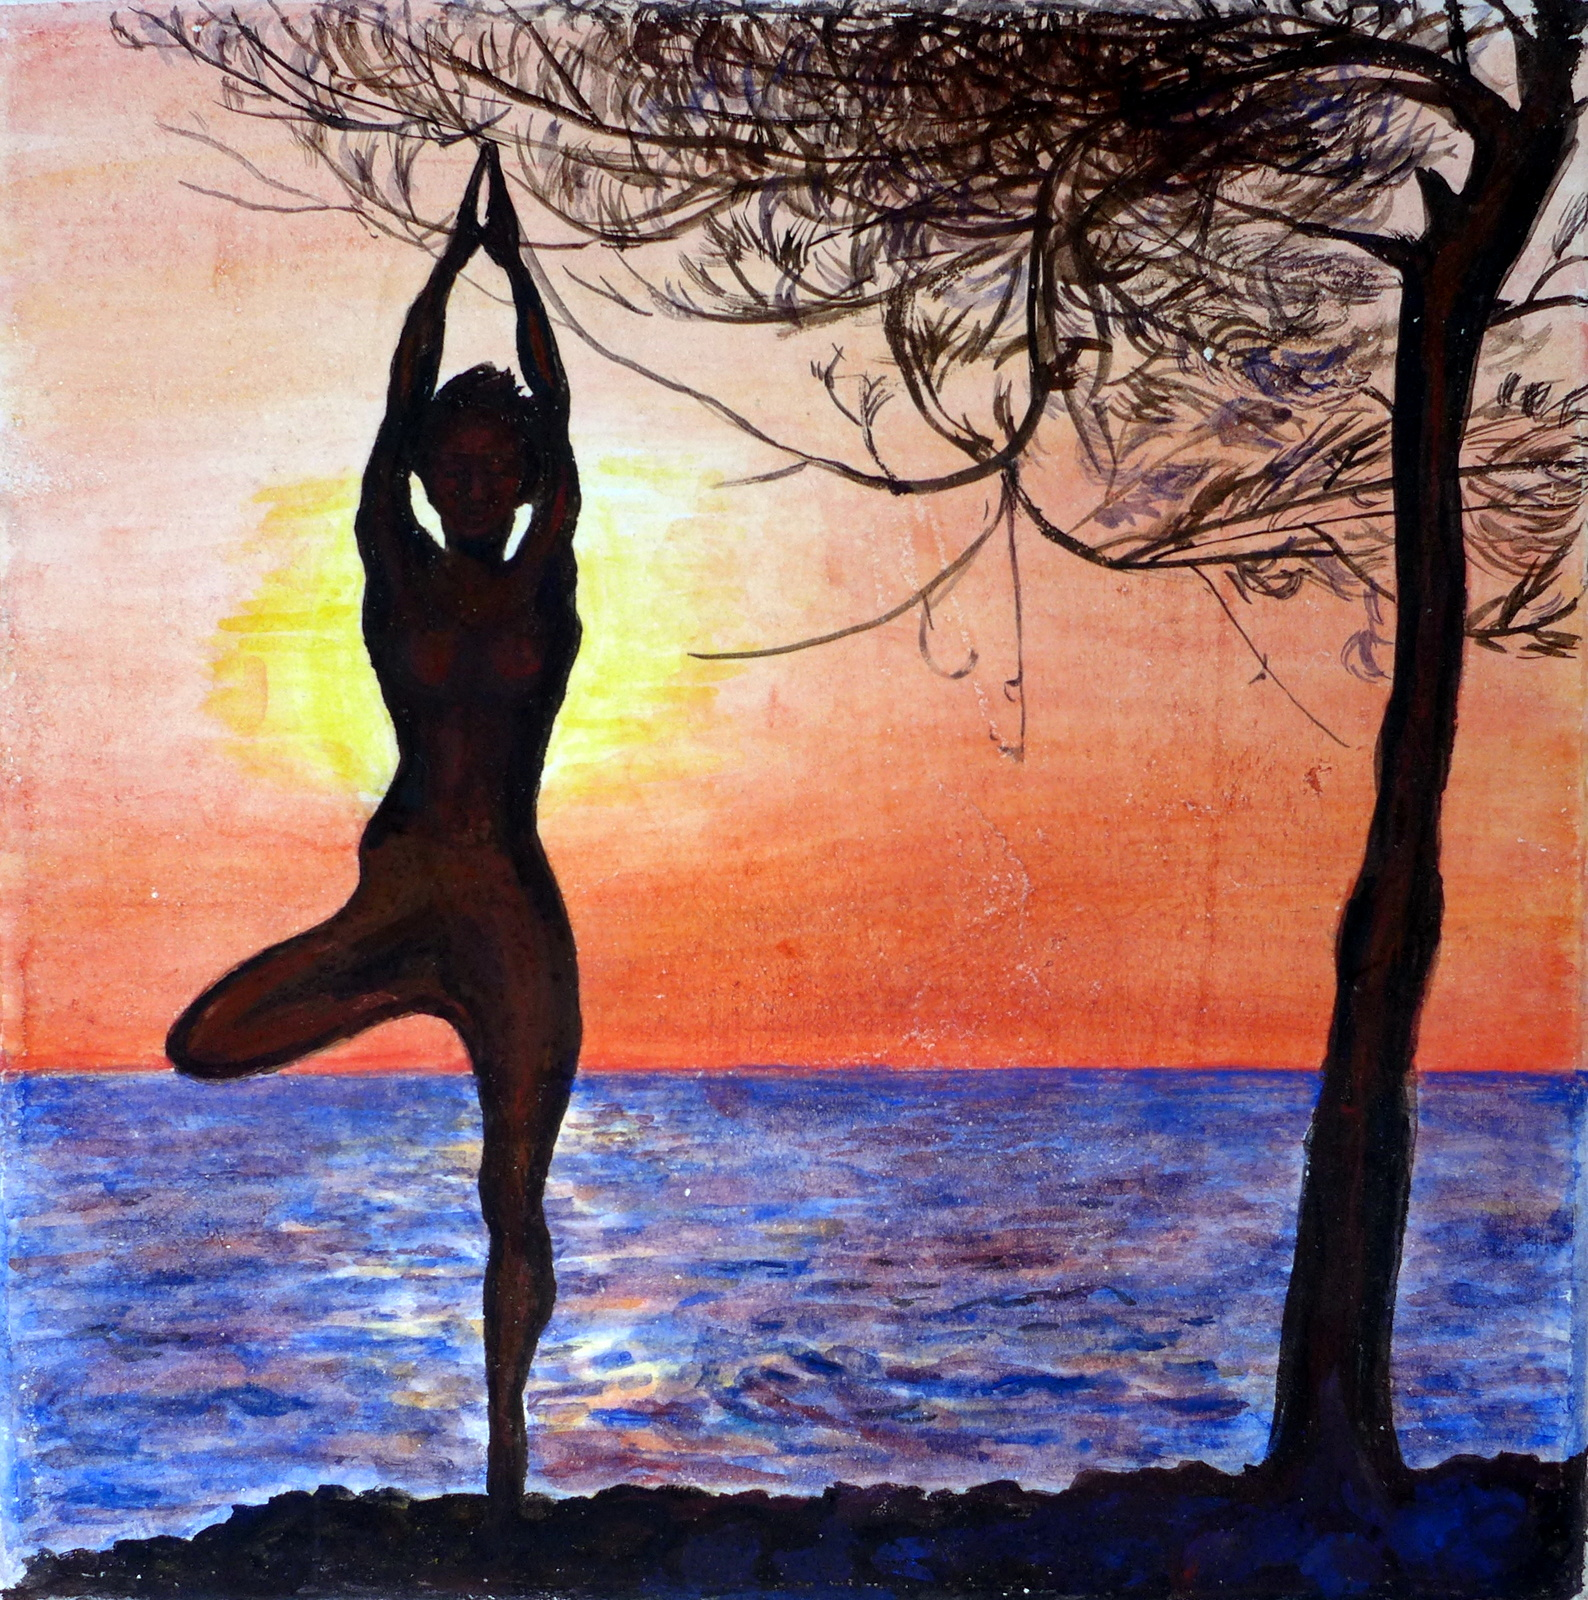 sunset yoga - ©sanna holm 2014